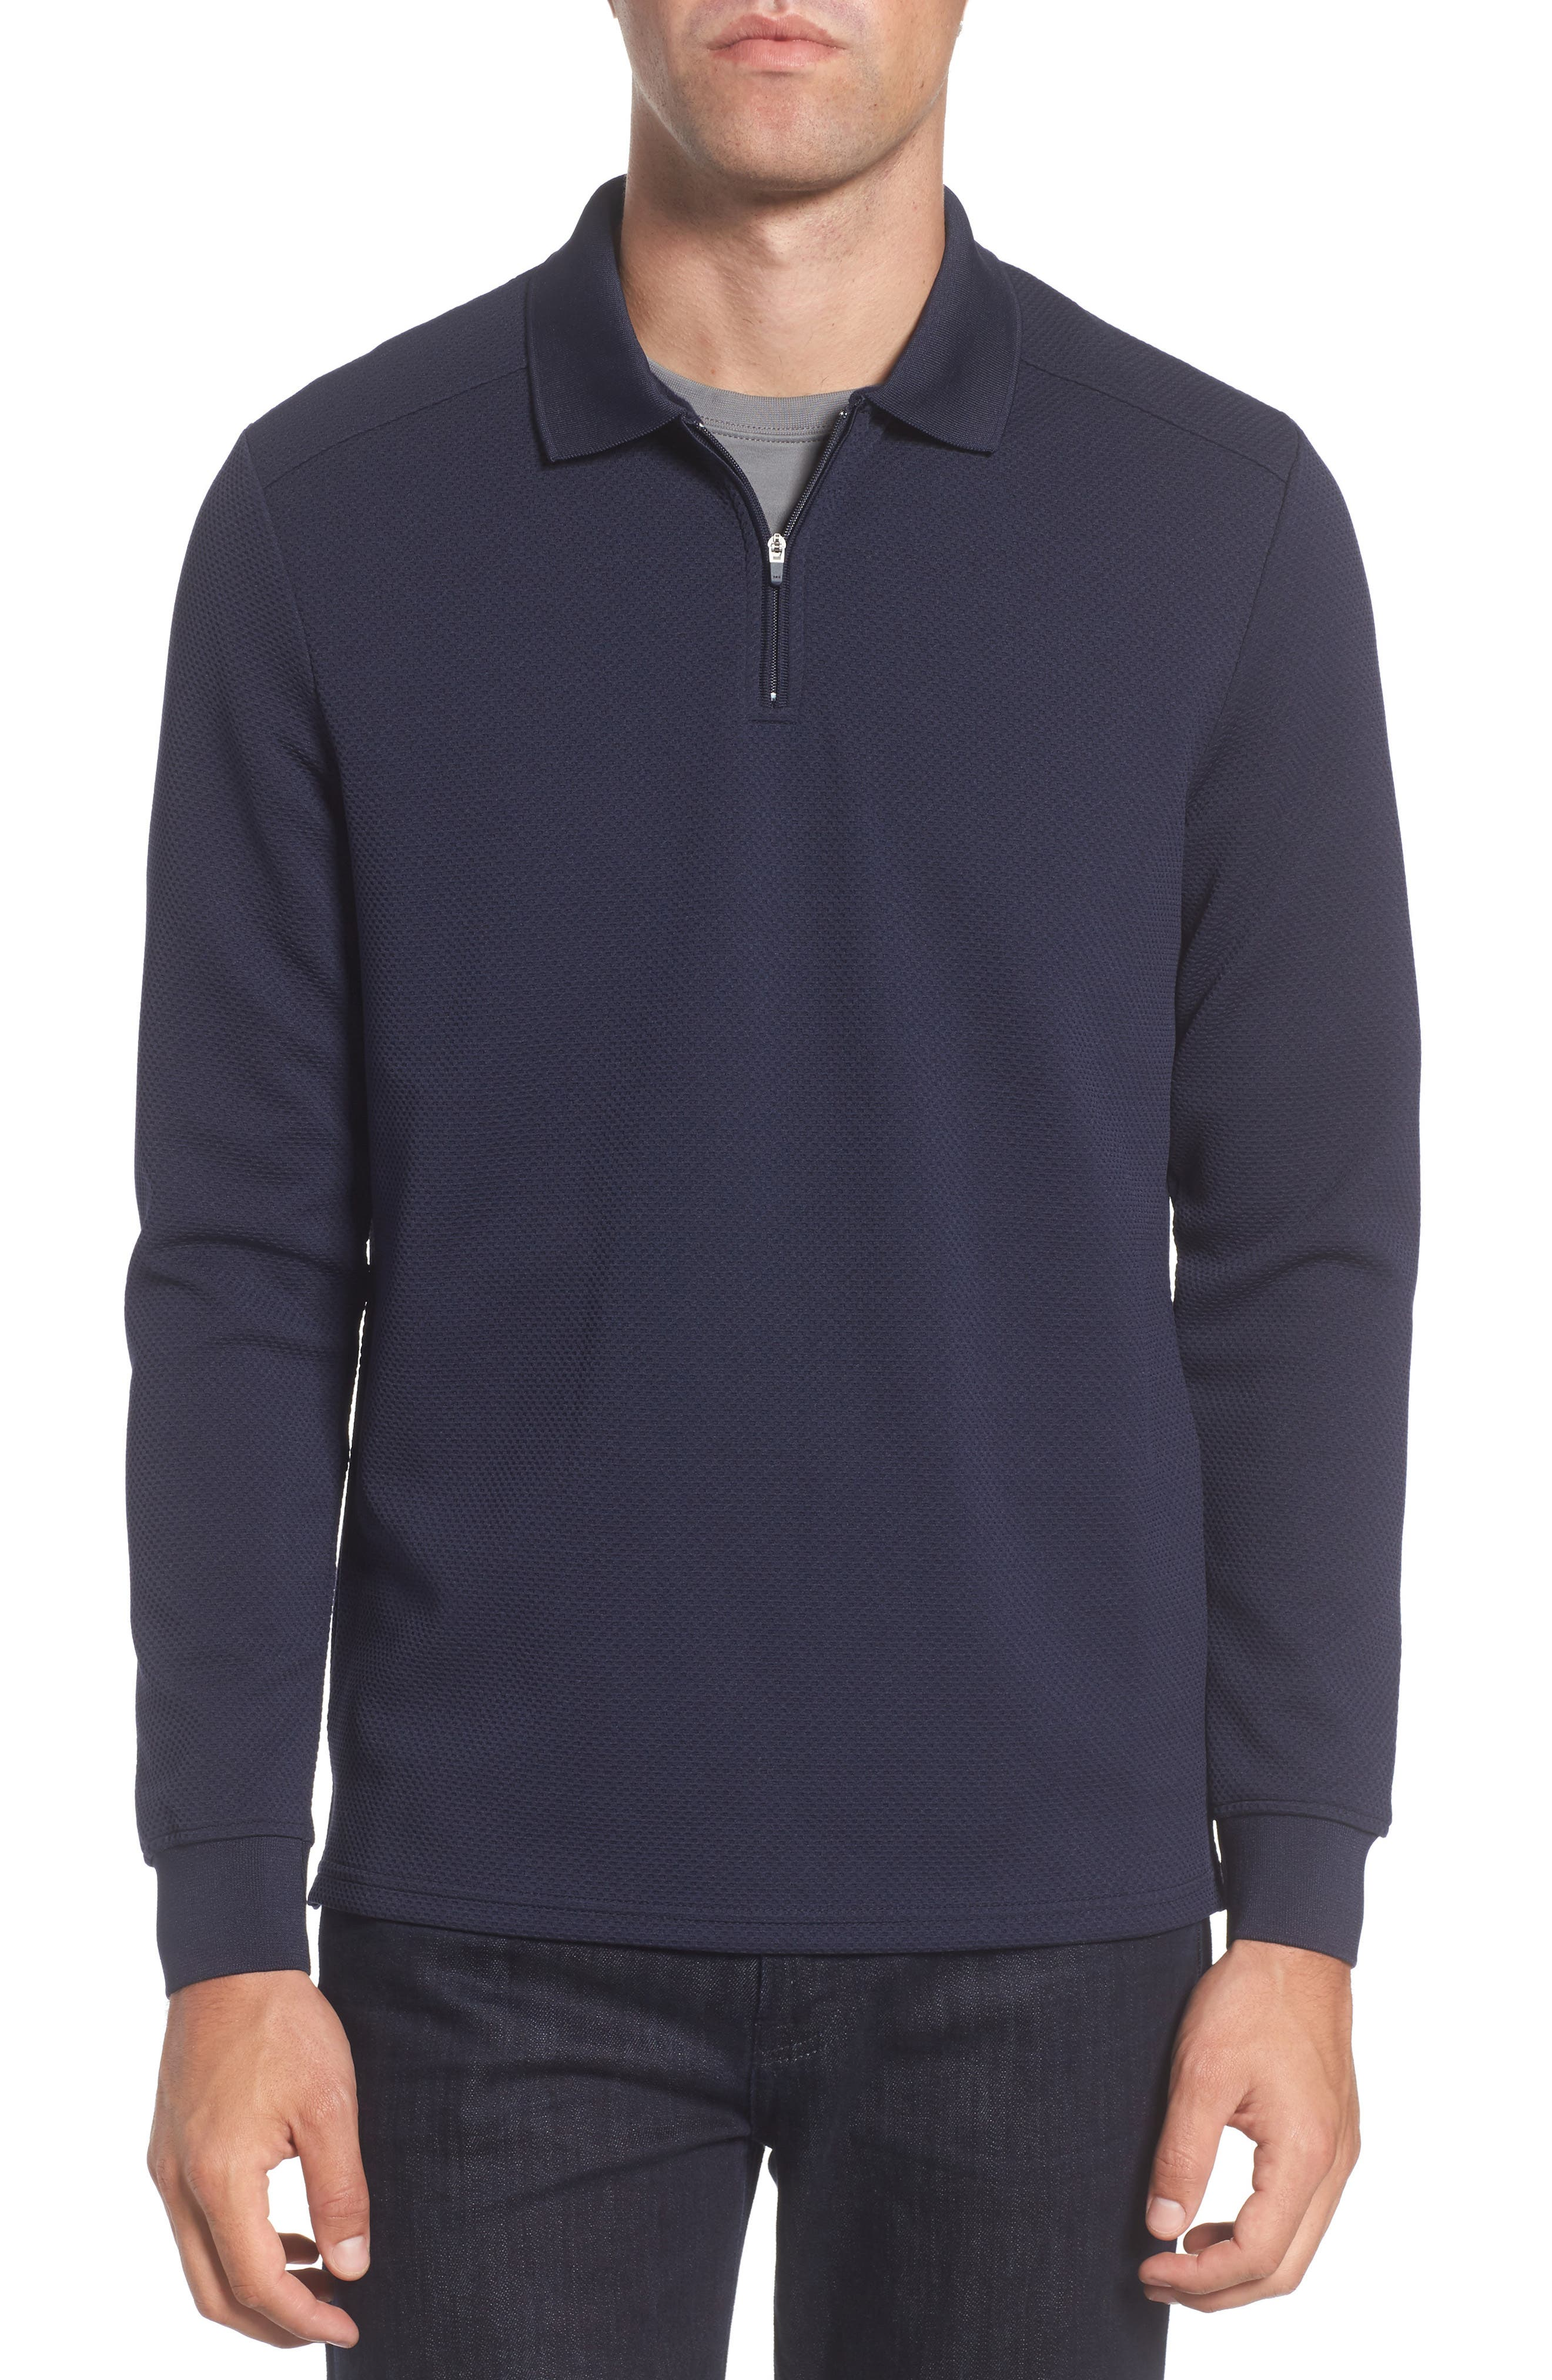 Main Image - Vince Camuto Slim Fit Quarter Zip Mesh Polo